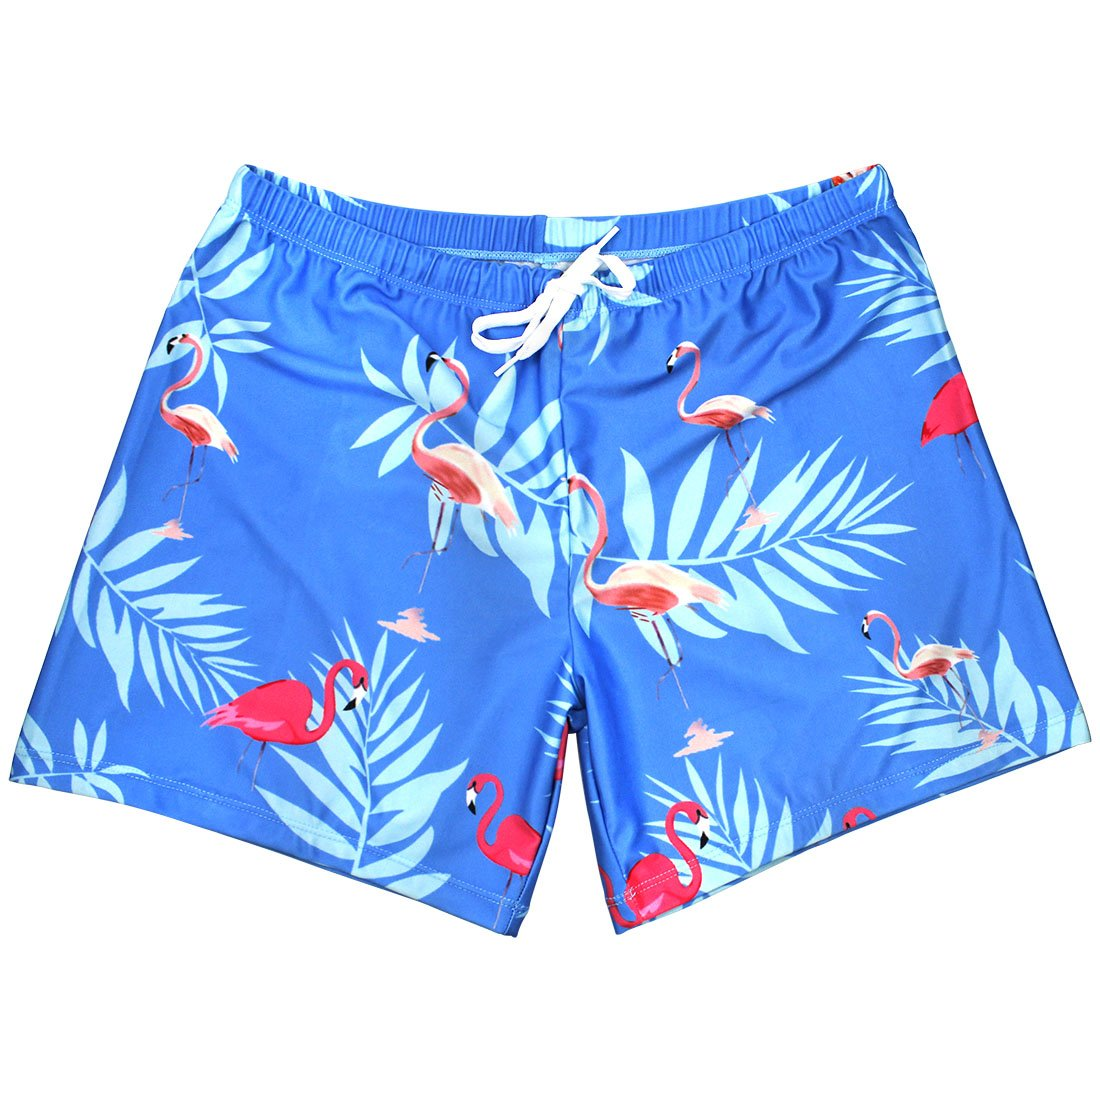 61f313376a MATERIALS: mens Swim Trunks made of Professional polyester skin fabric, quick  dry, comfortable and breathable, soft and creamy feel,this Bathing Suits  will ...